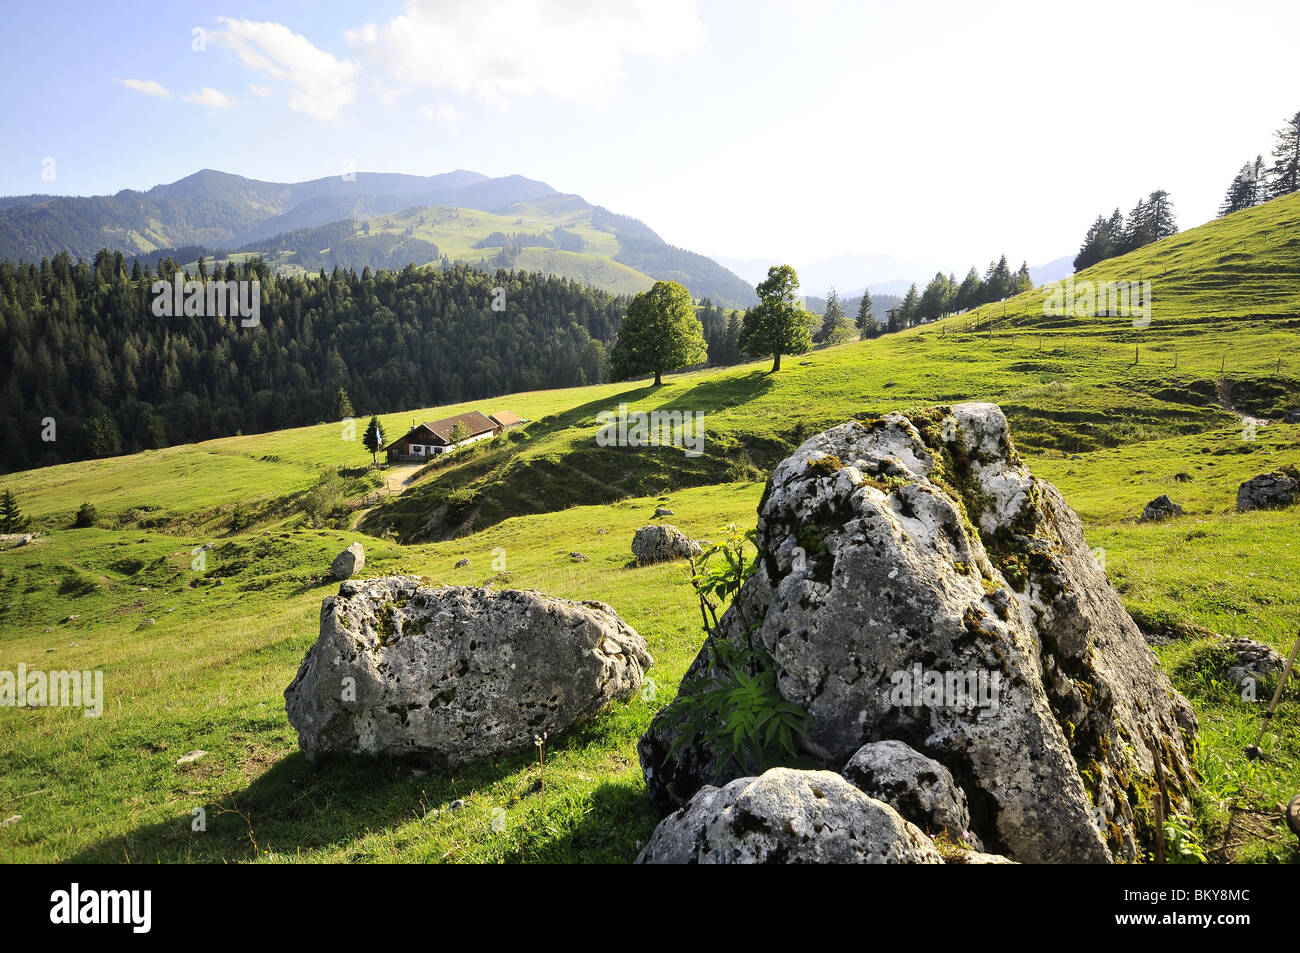 Sudelfeld near Bayrischzell, Bavaria, Germany - Stock Image